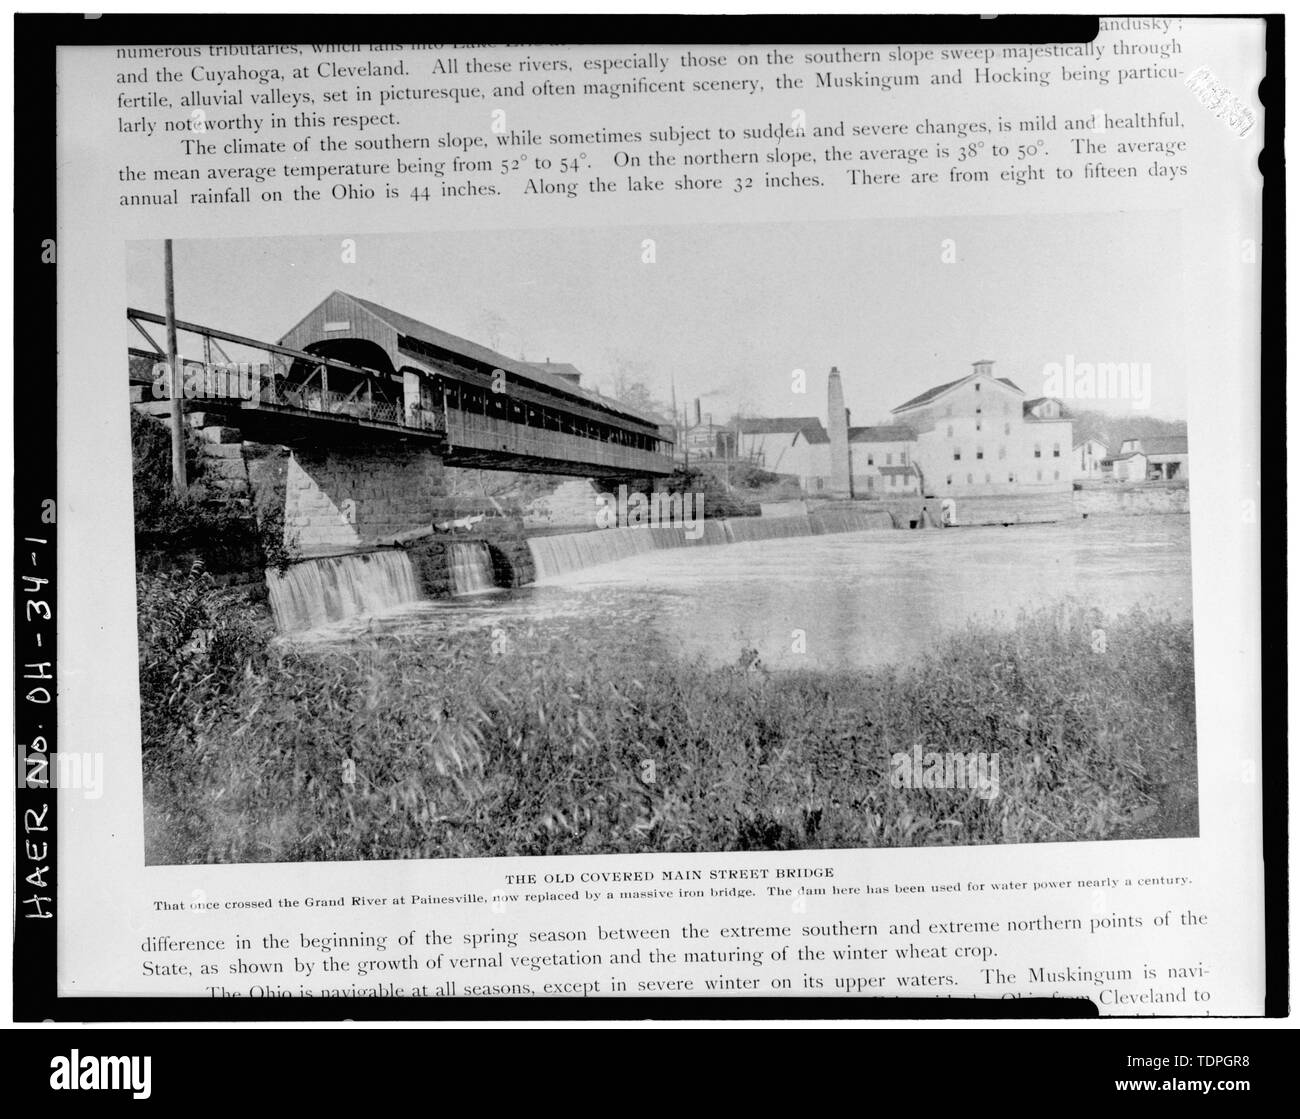 . VIEW SHOWING 1866 COVERED BRIDGE AND 1881 EXTENSION PREVIOUS TO THE 1896 MAIN STREET BRIDGE (from C. S. Van Tassel's The Book of Ohio (Vol. 1), Toledo, Ohio, 1901, p. 200.) - Main Street Bridge, Spanning Grand River at Main Street, Painesville, Lake County, OH - Stock Image